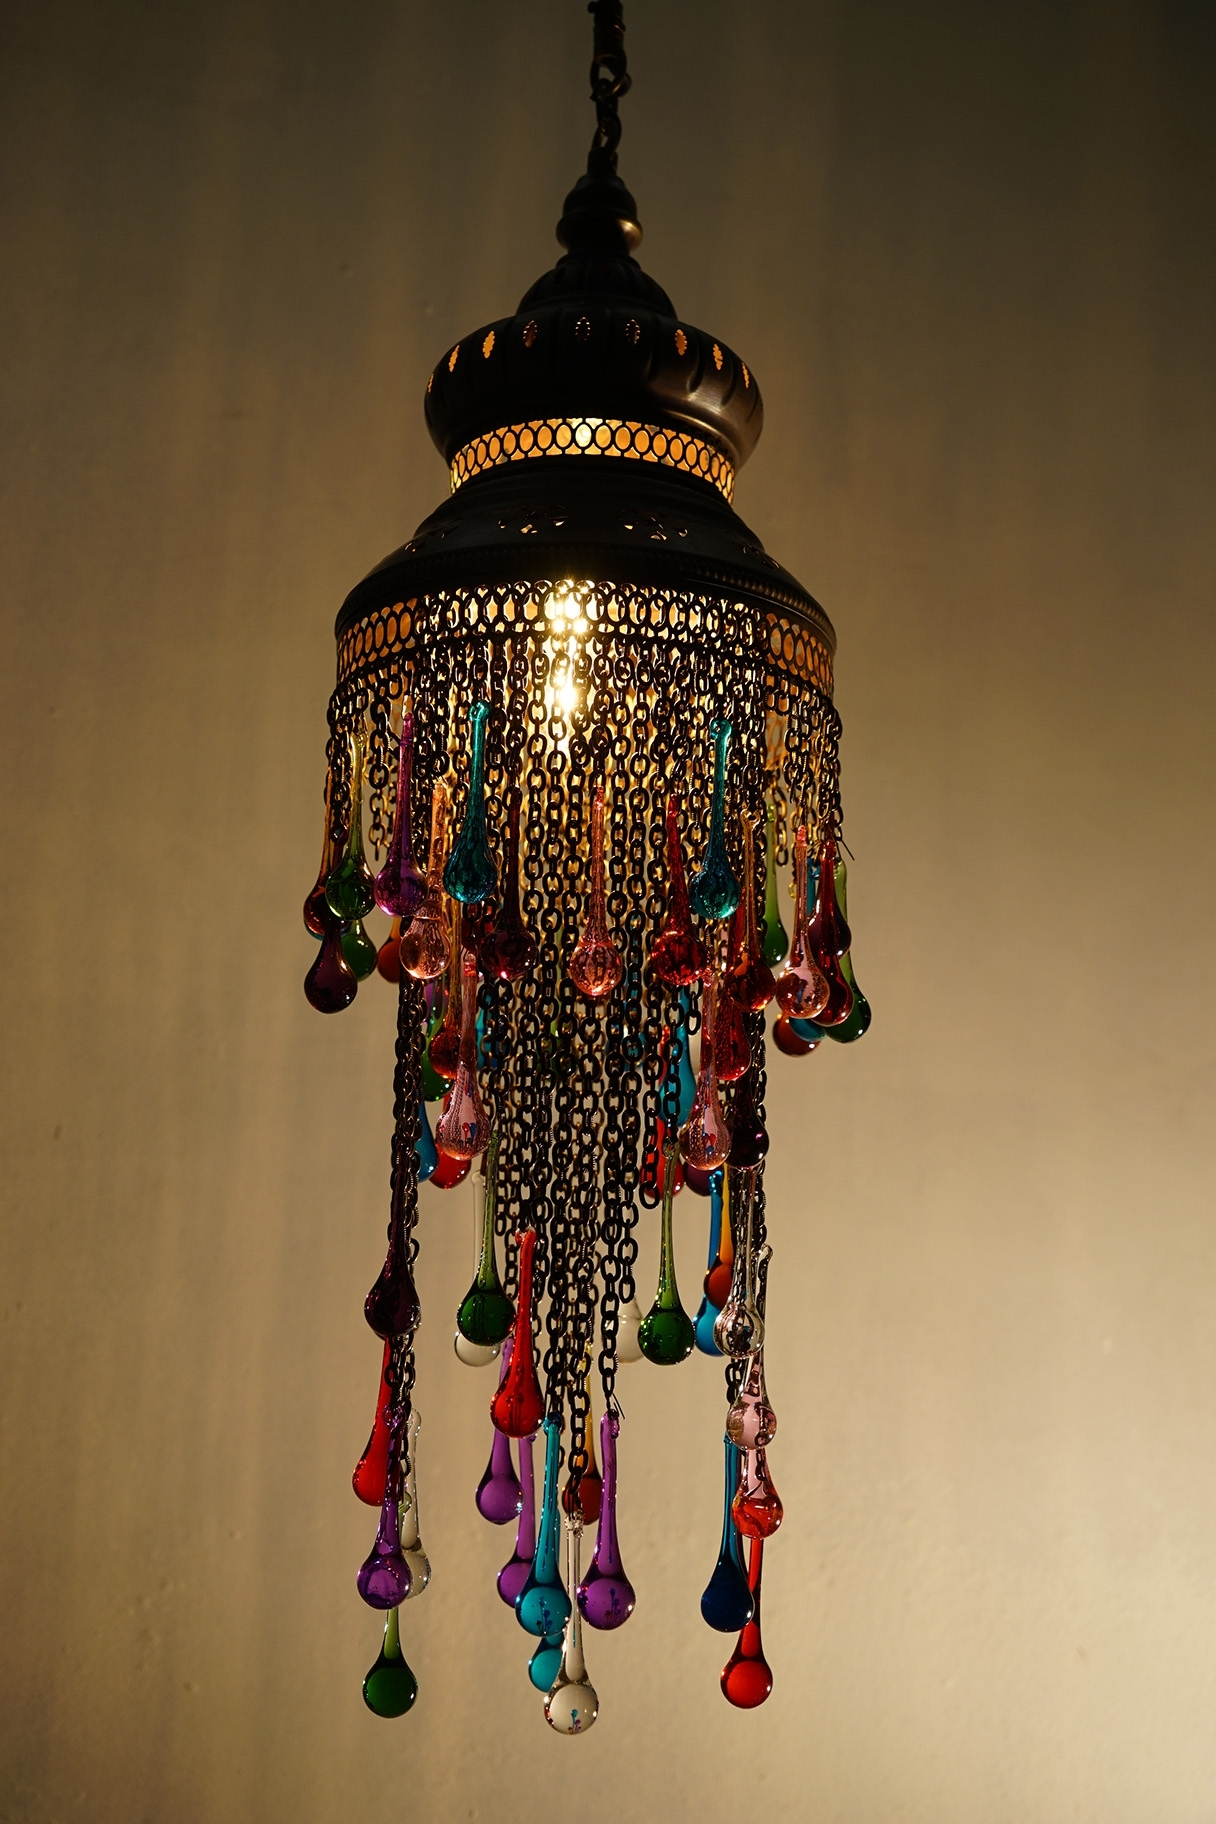 Coloured Glass Chandelier For Most Up To Date Coloured Glass Tear Drop Chandelier (View 4 of 15)